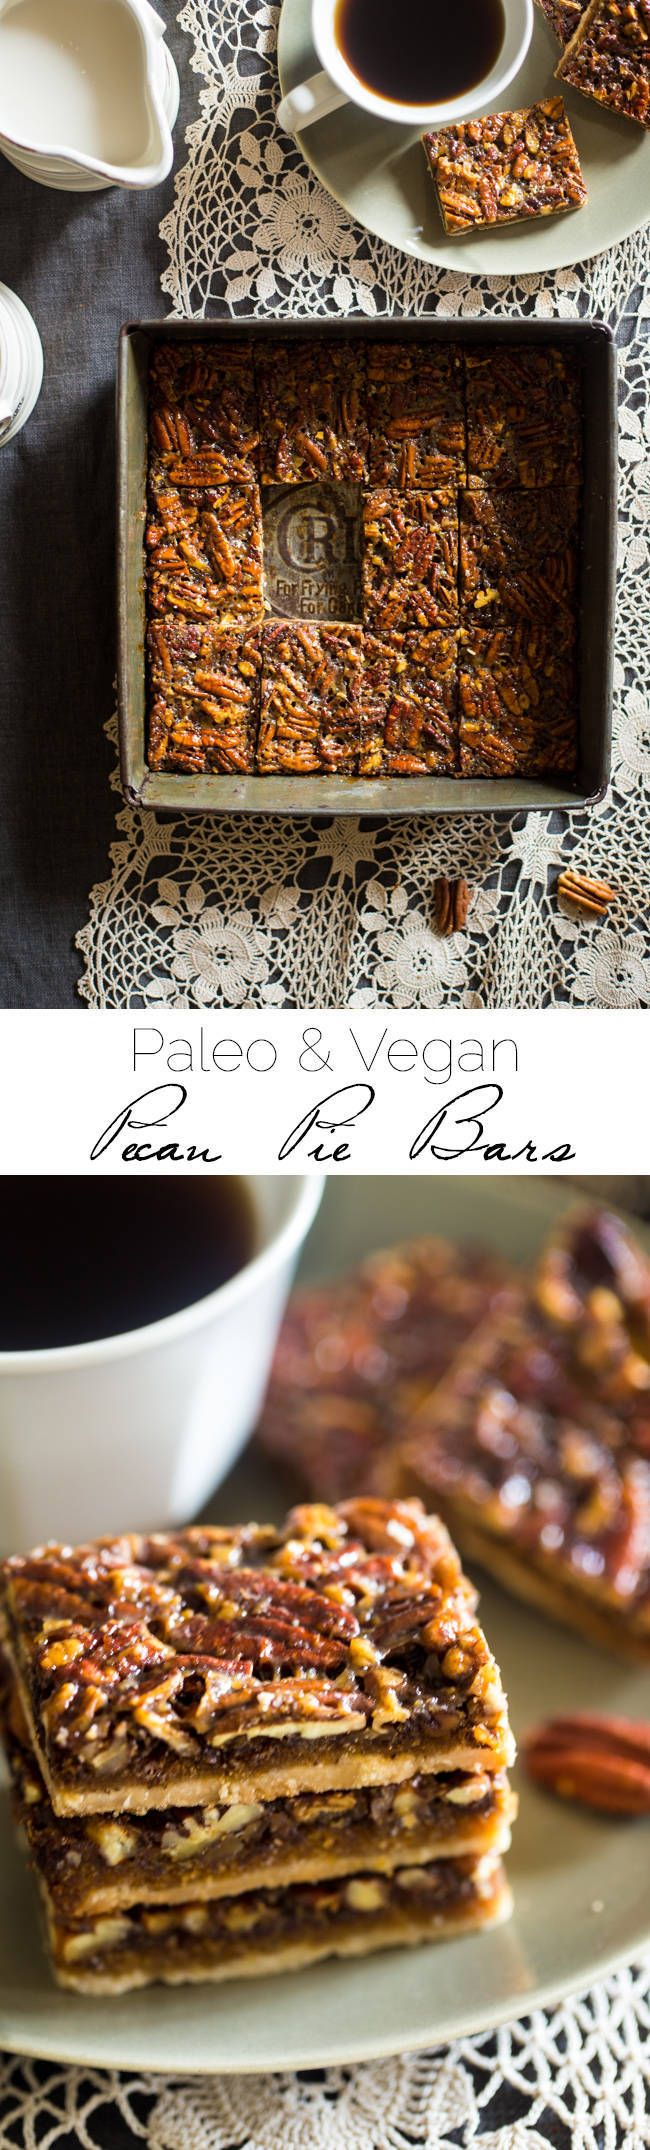 Vegan + Paleo Pecan Pie Bars - These bars are so easy to make and only have 6 ingredients. You would never know they're secretly a healthy, gluten free, and vegan-friendly treat that's perfect for Thanksgiving! | Foodfaithfitness.com | @Food Faith Fitness